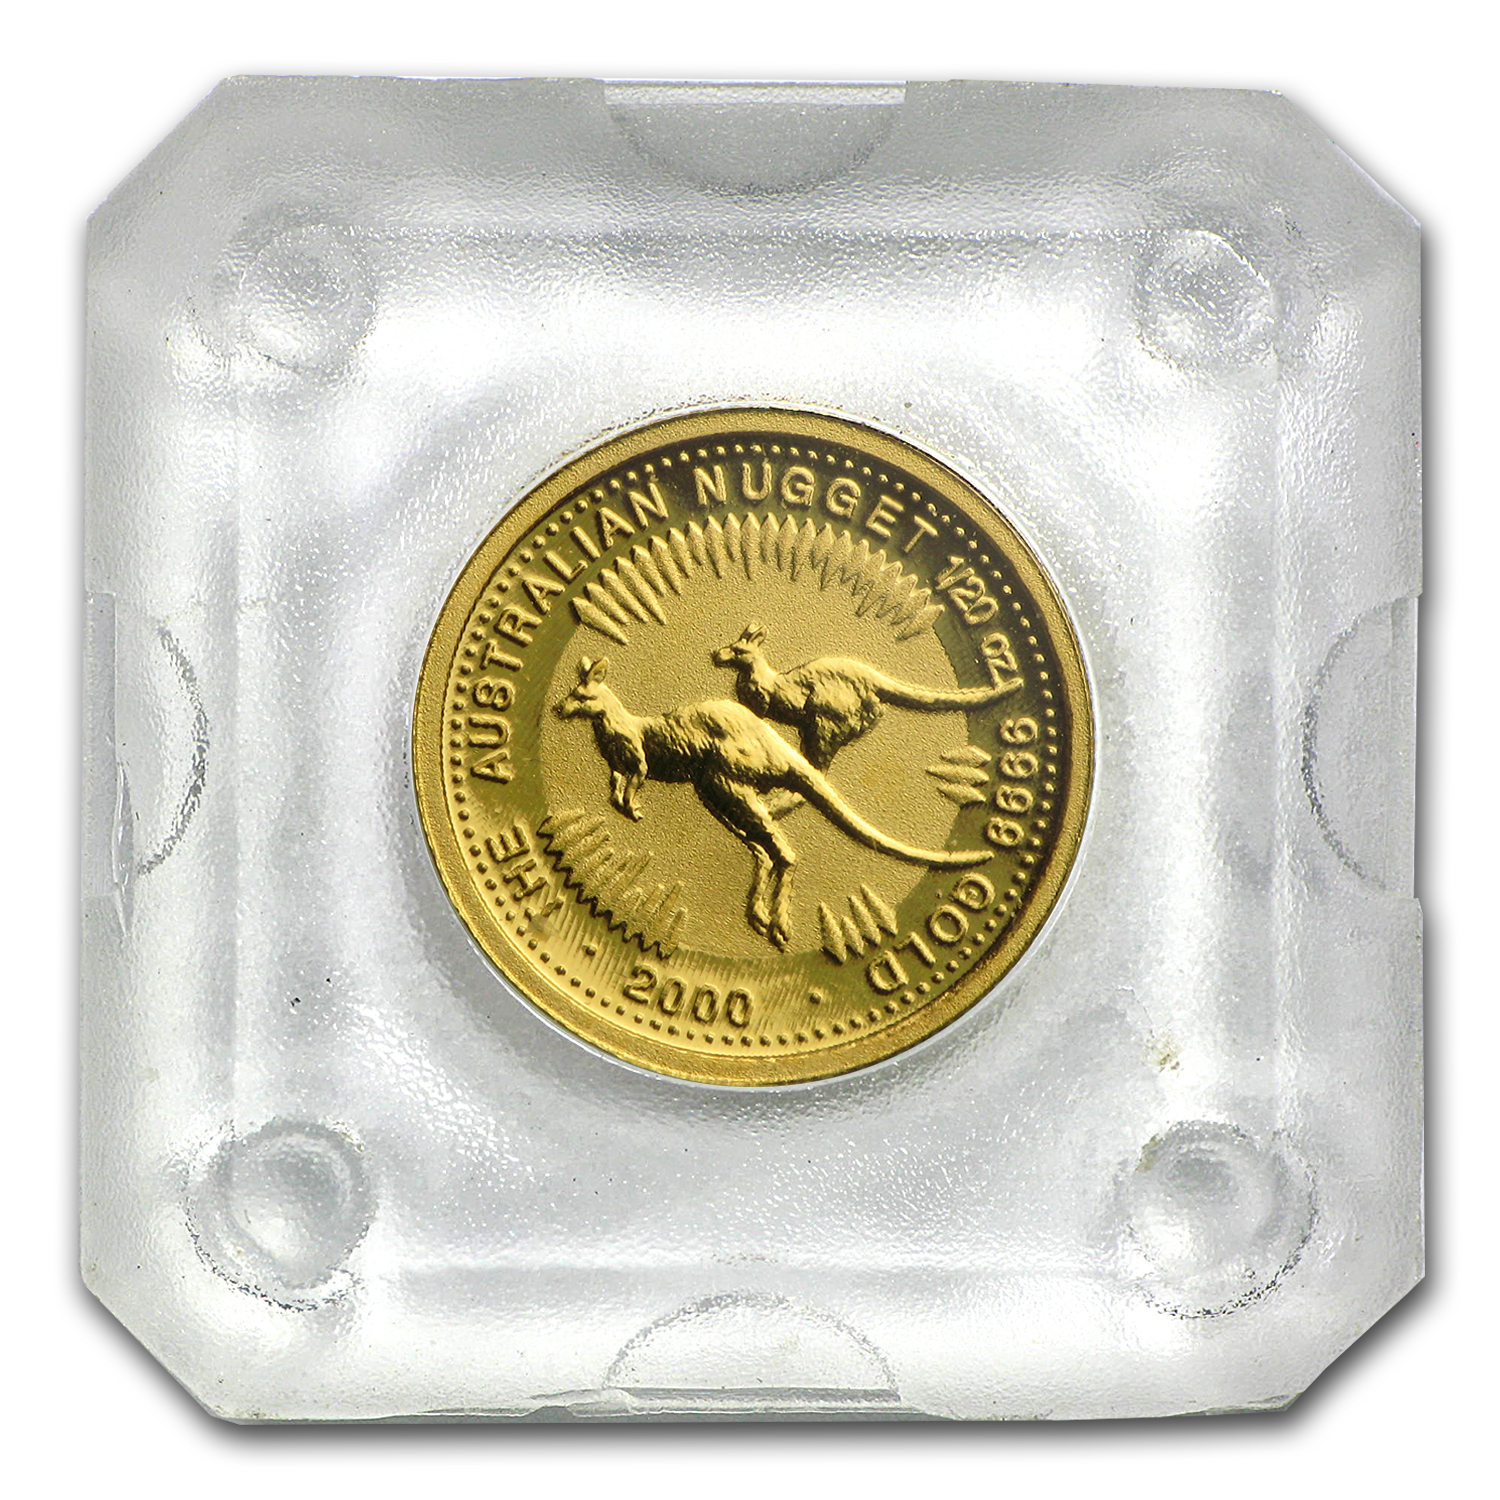 2000 Australia 1/20 oz Gold Nugget